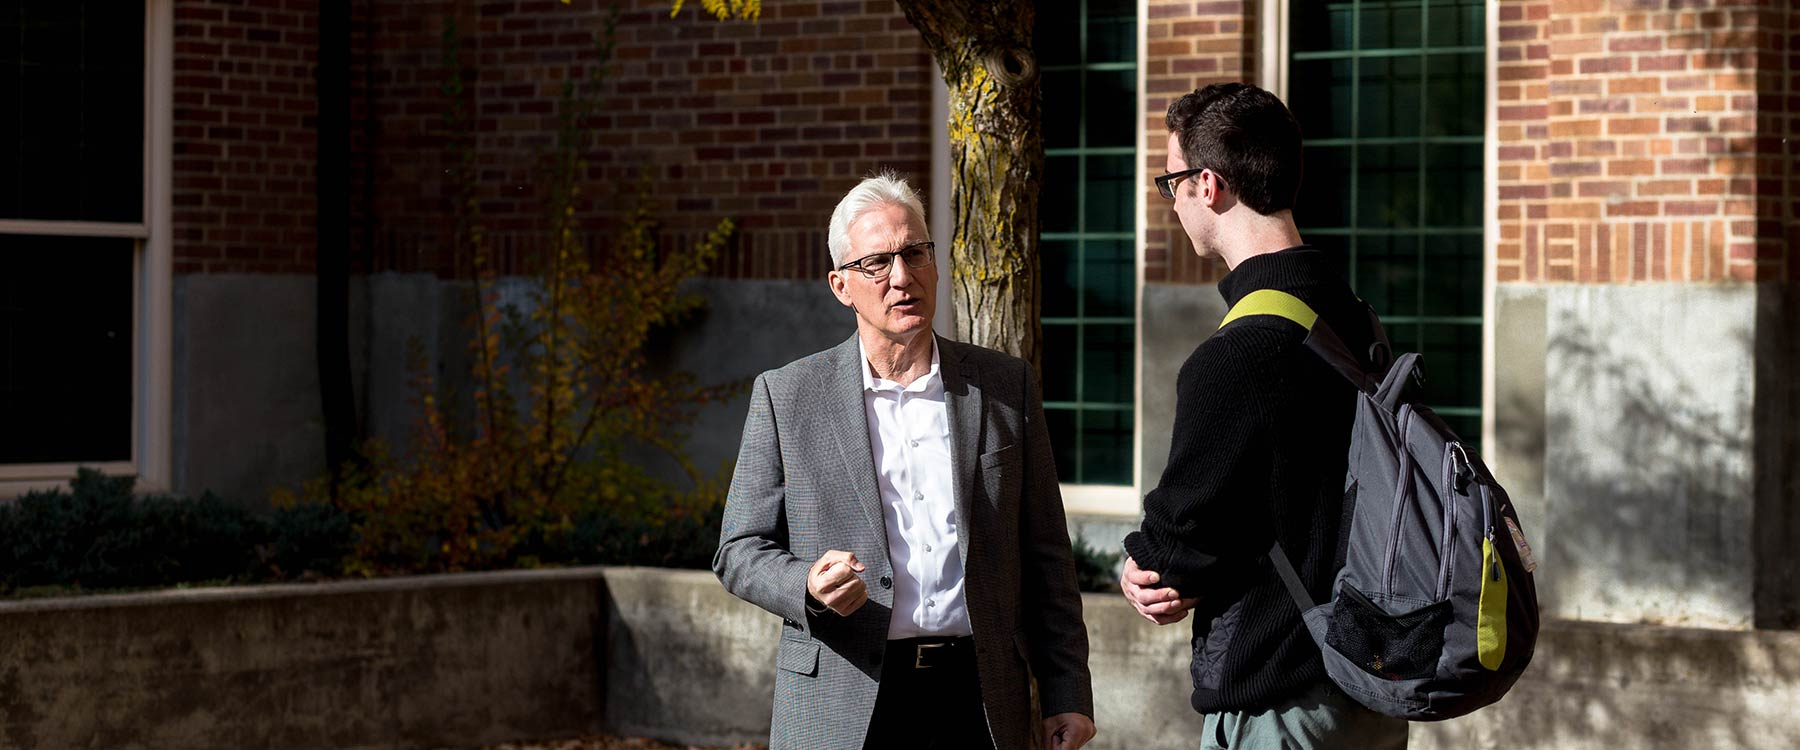 Professor Randall Michaelis stands and speaks with a student somewhere outside a campus building.